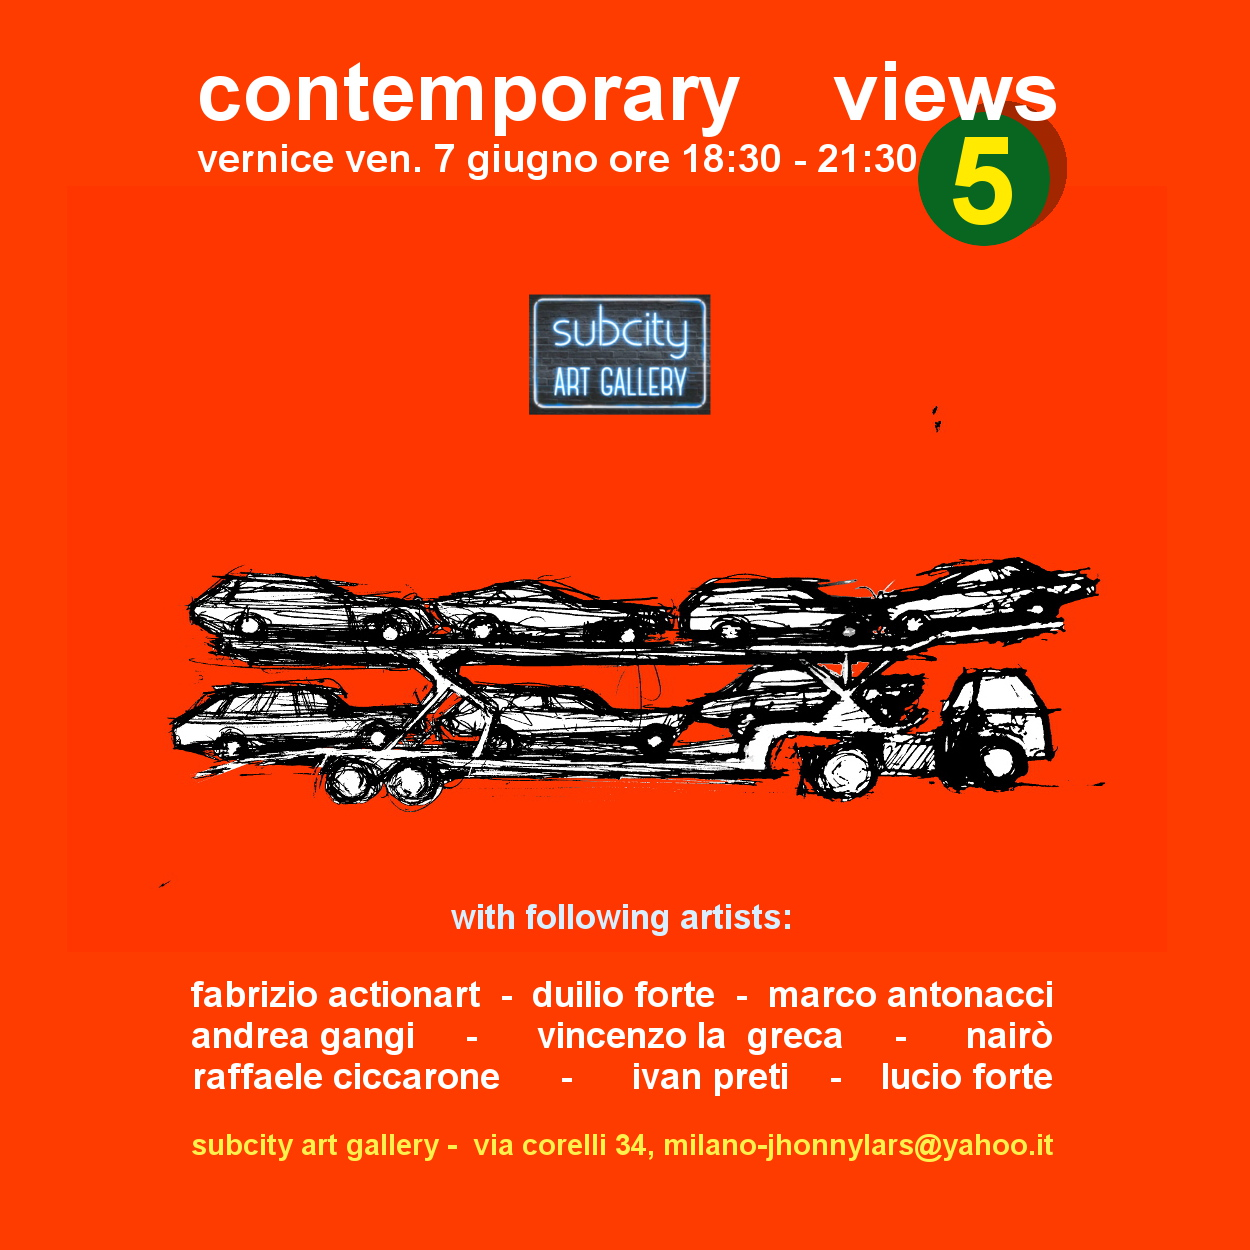 contemporary views 5